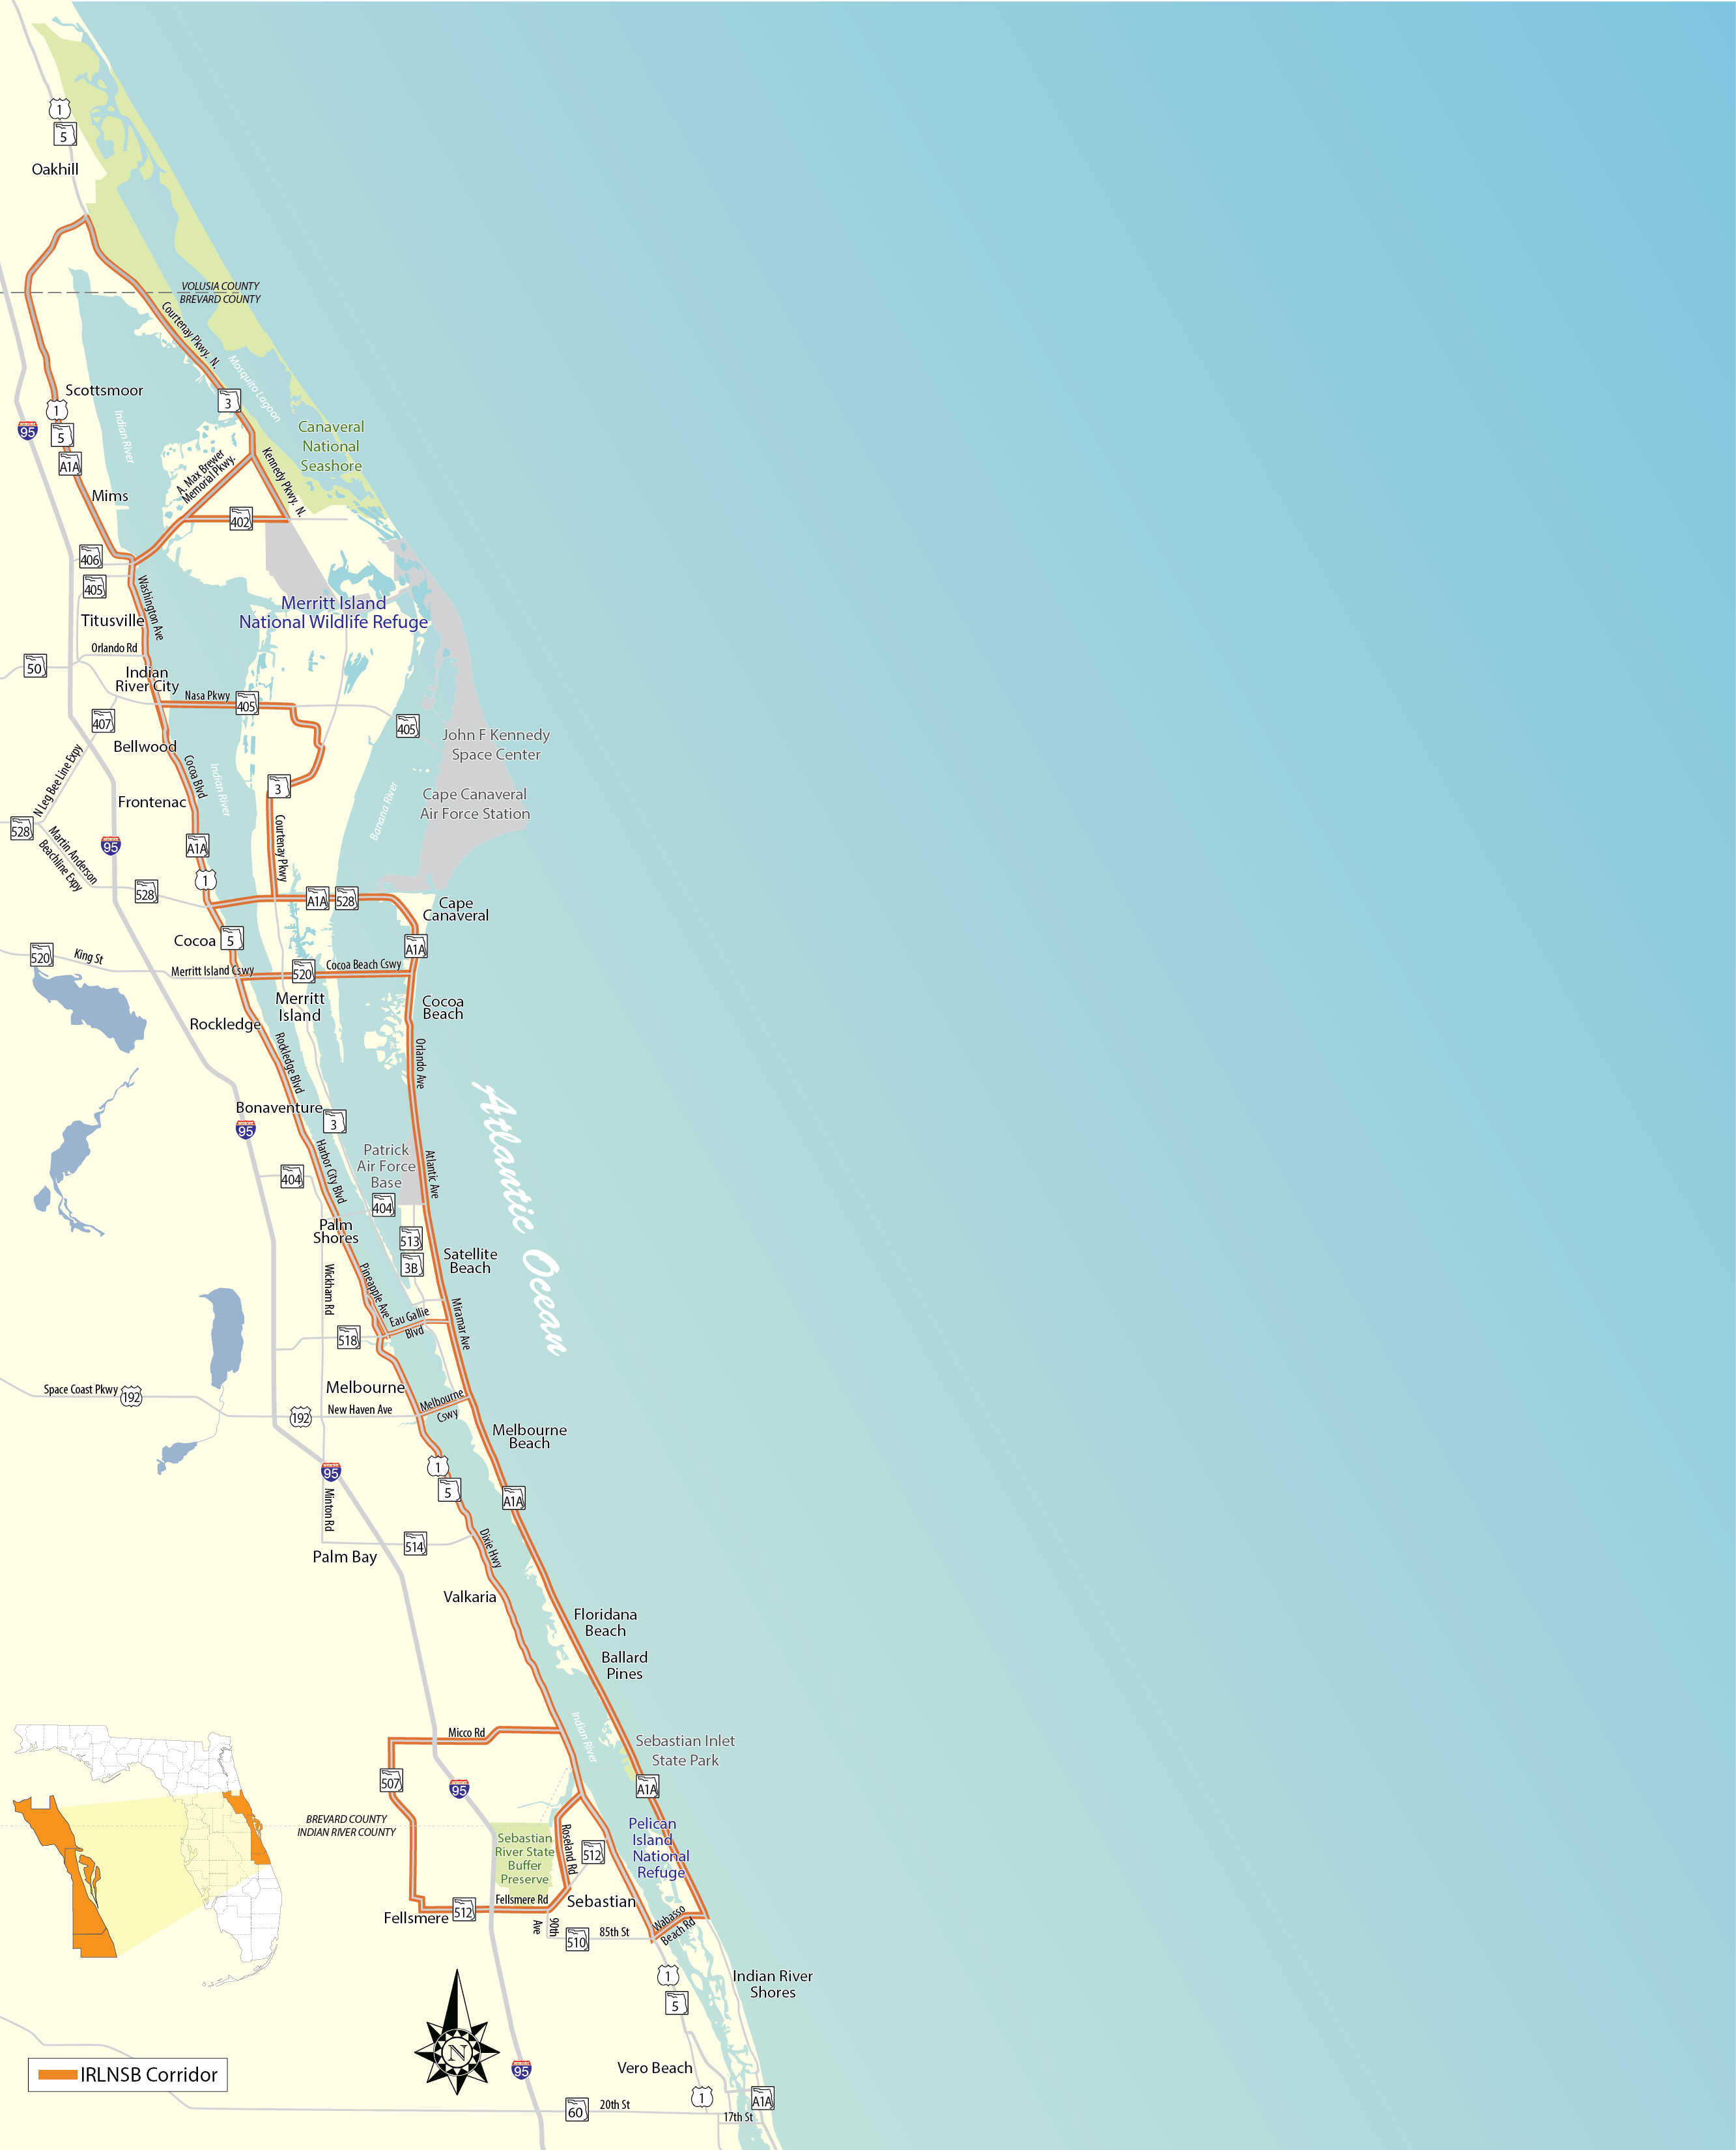 Indian River Lagoon National Scenic Byway Florida Scenic Highways - Indian river lagoon map